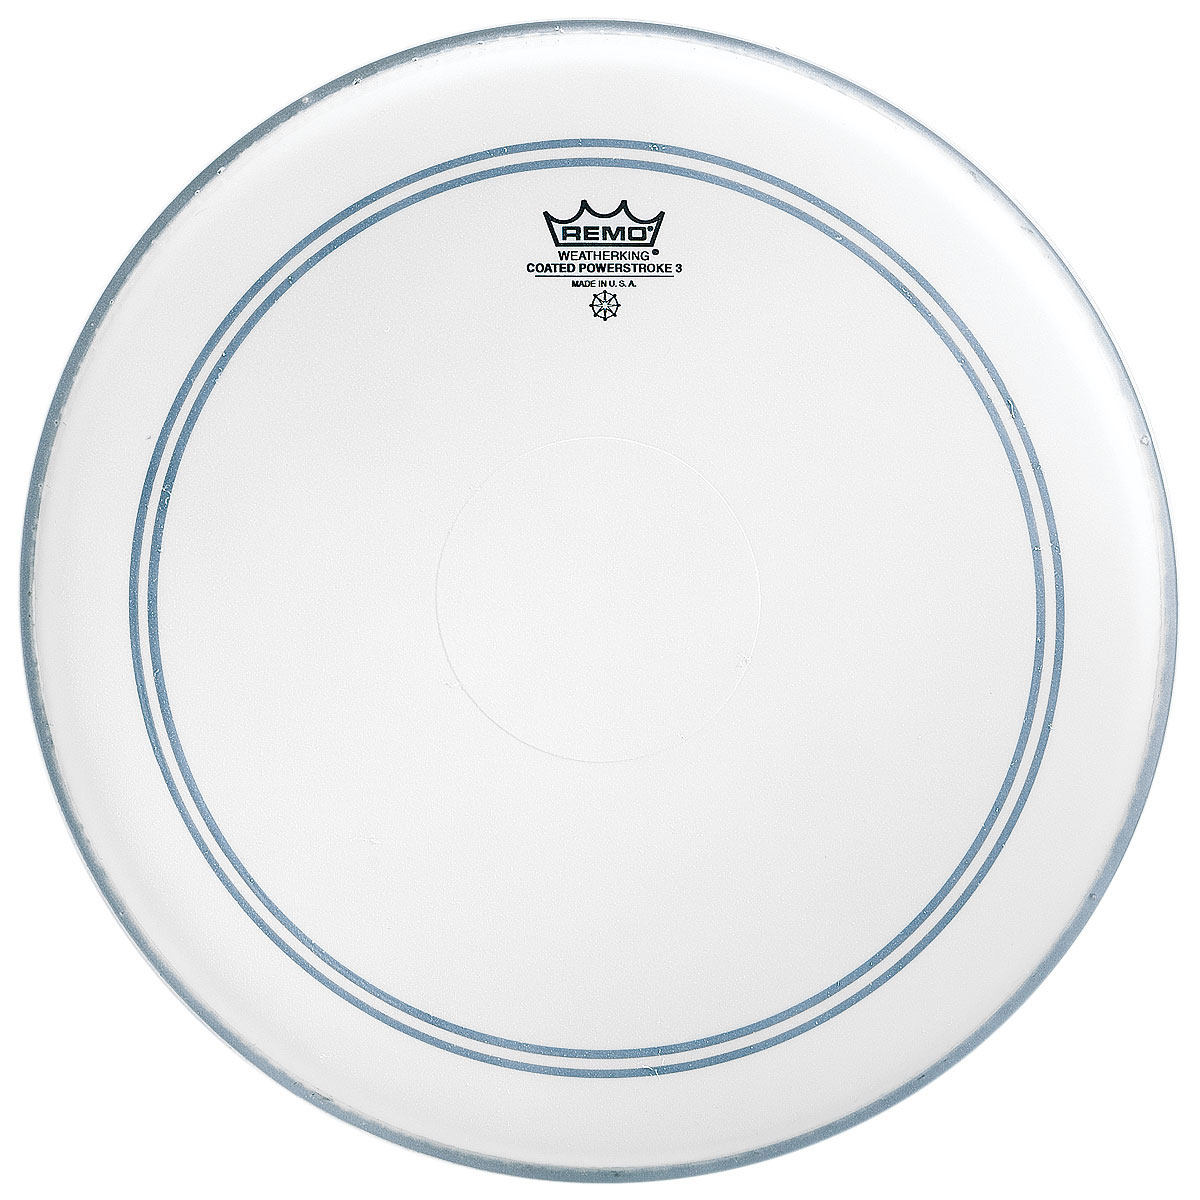 "Remo 13"" Powerstroke P3 Coated Drum Head with Clear Dot"